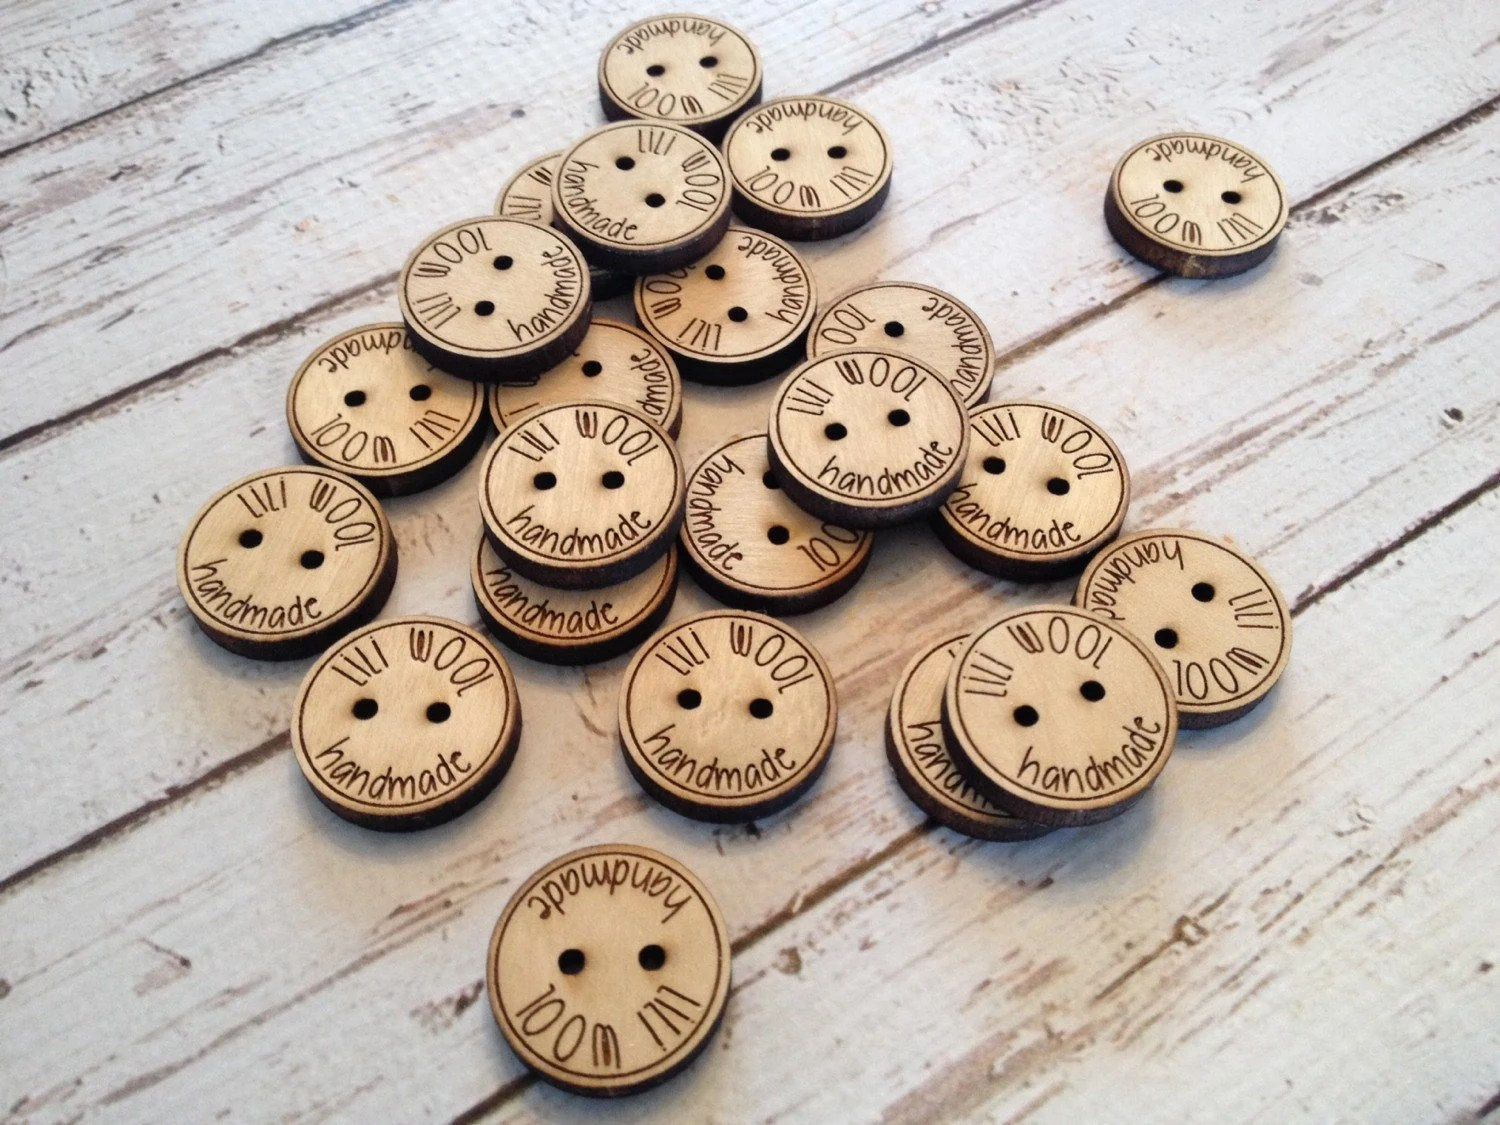 Custom button design  personalized wood button engraved image 1